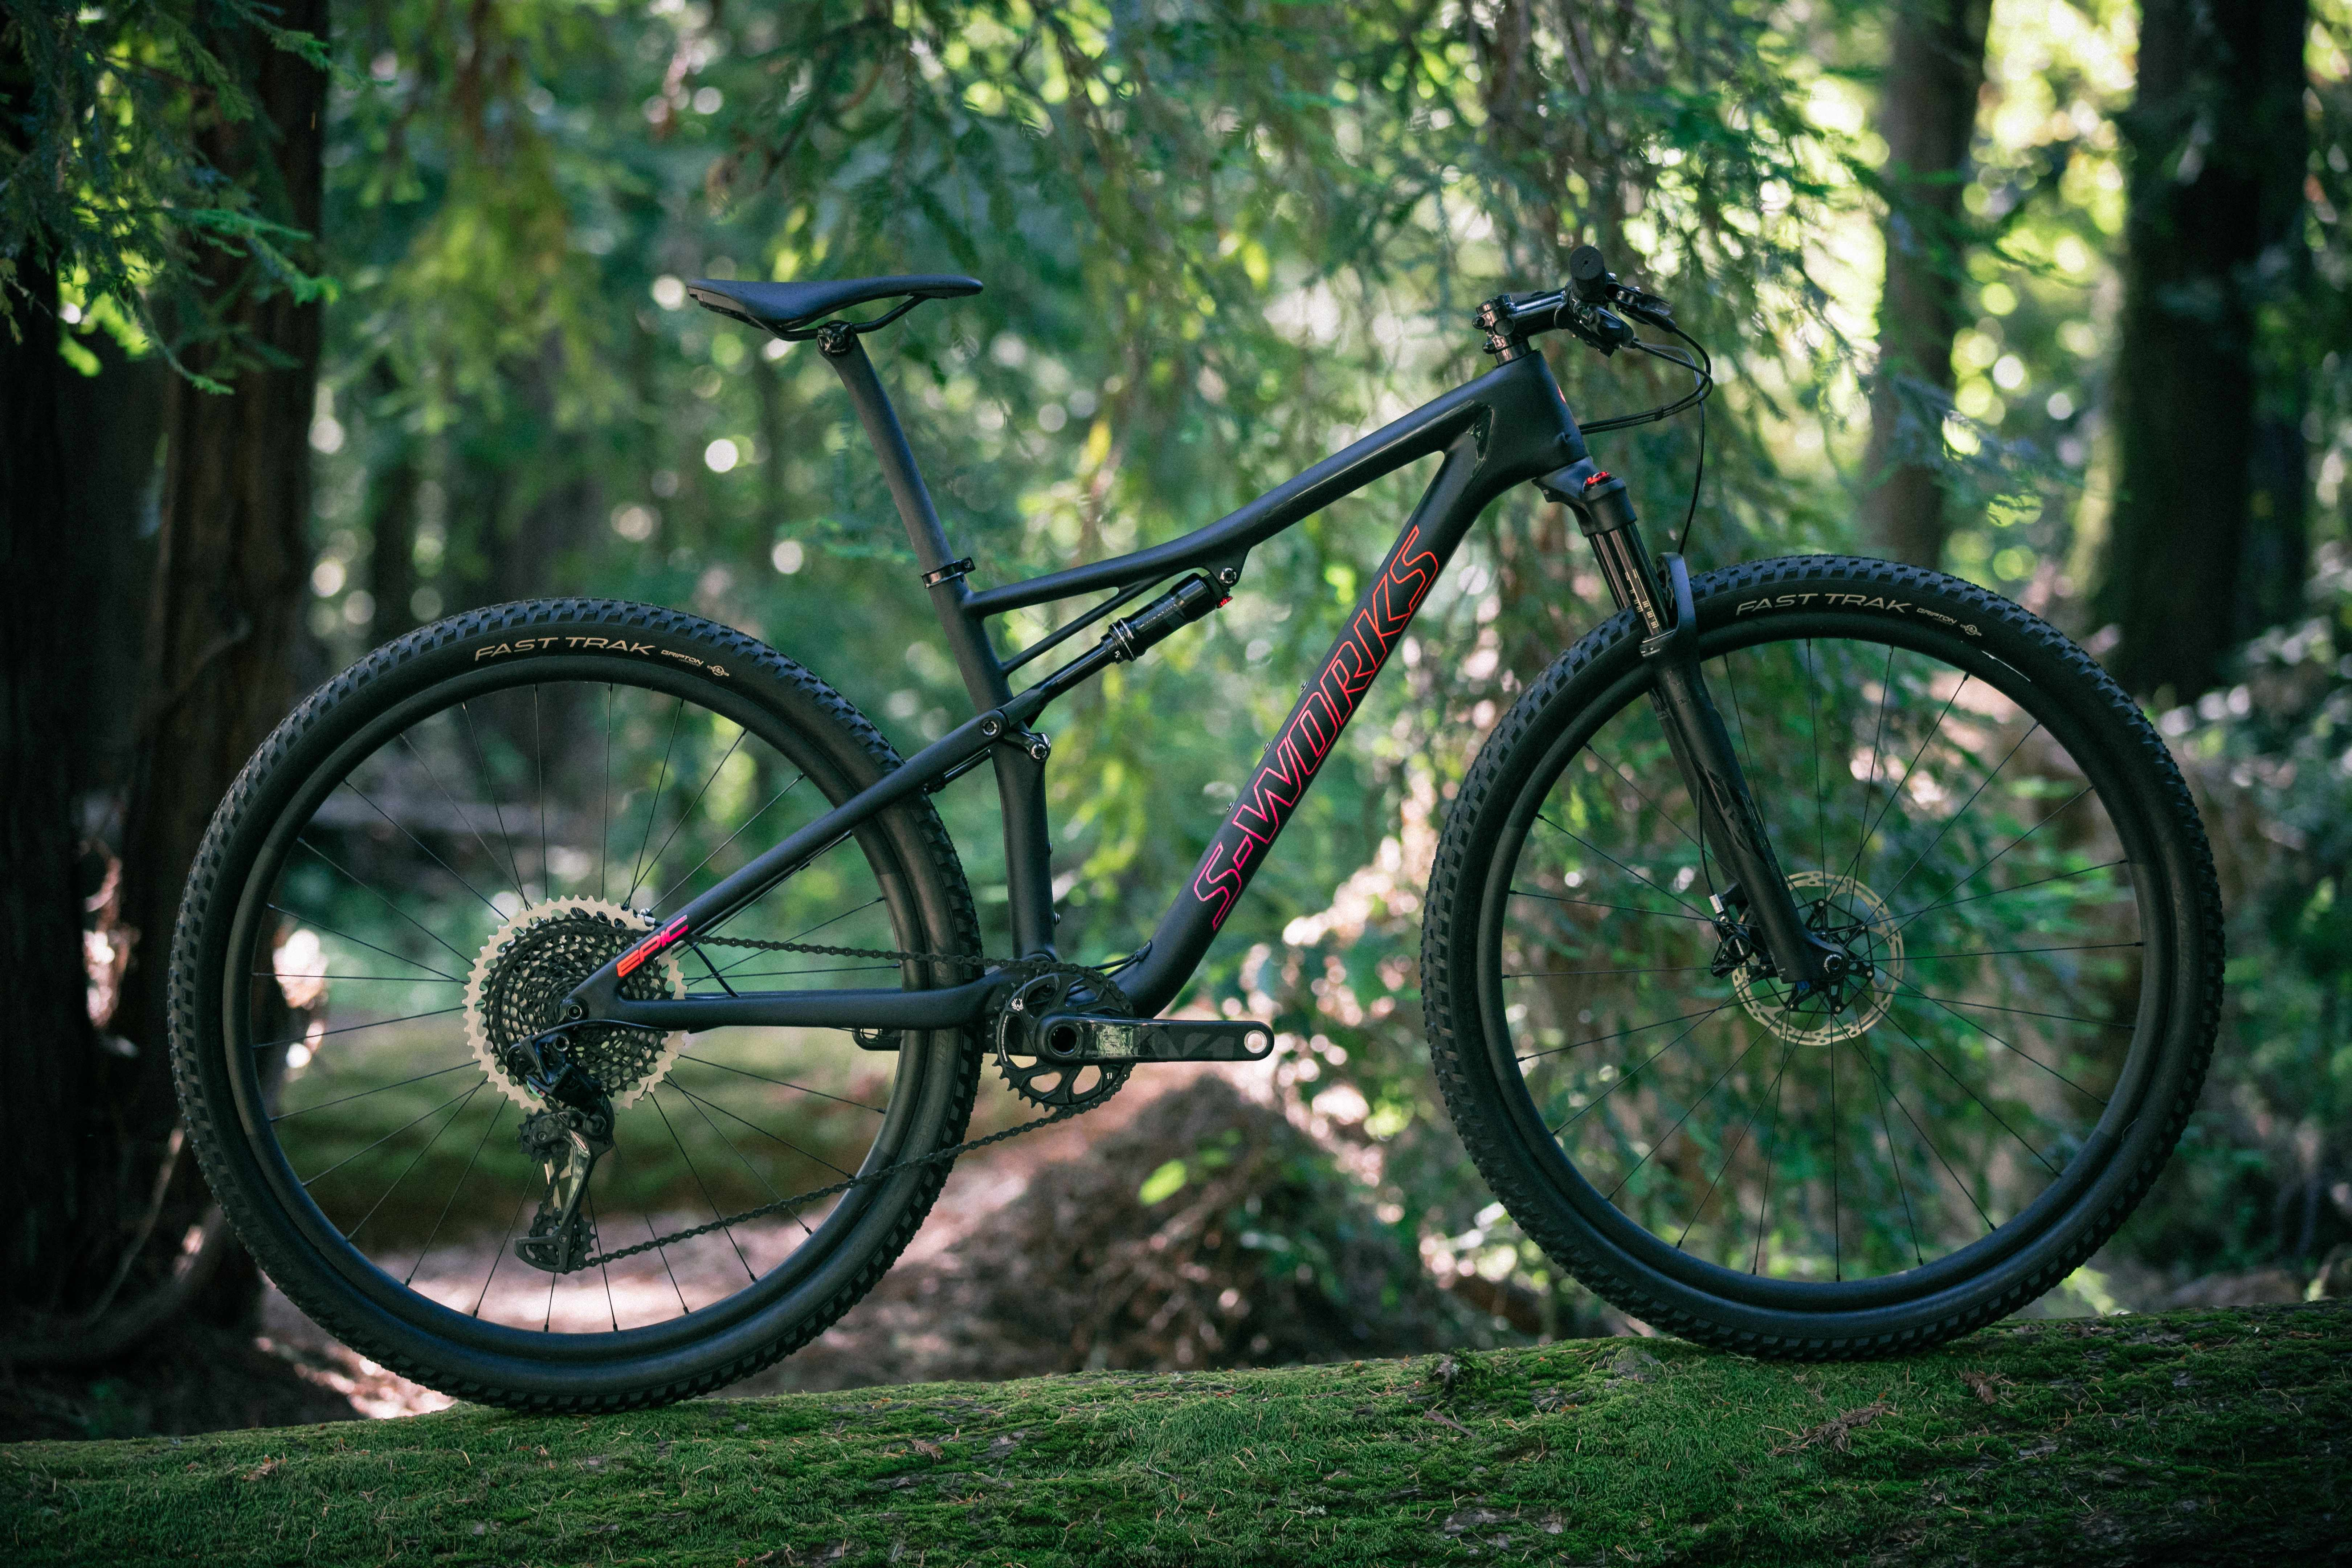 Specialized's all new Epic is designed to handle the more rigorous demands of the technical, bike battering cross-country tracks we're starting to see more and more of